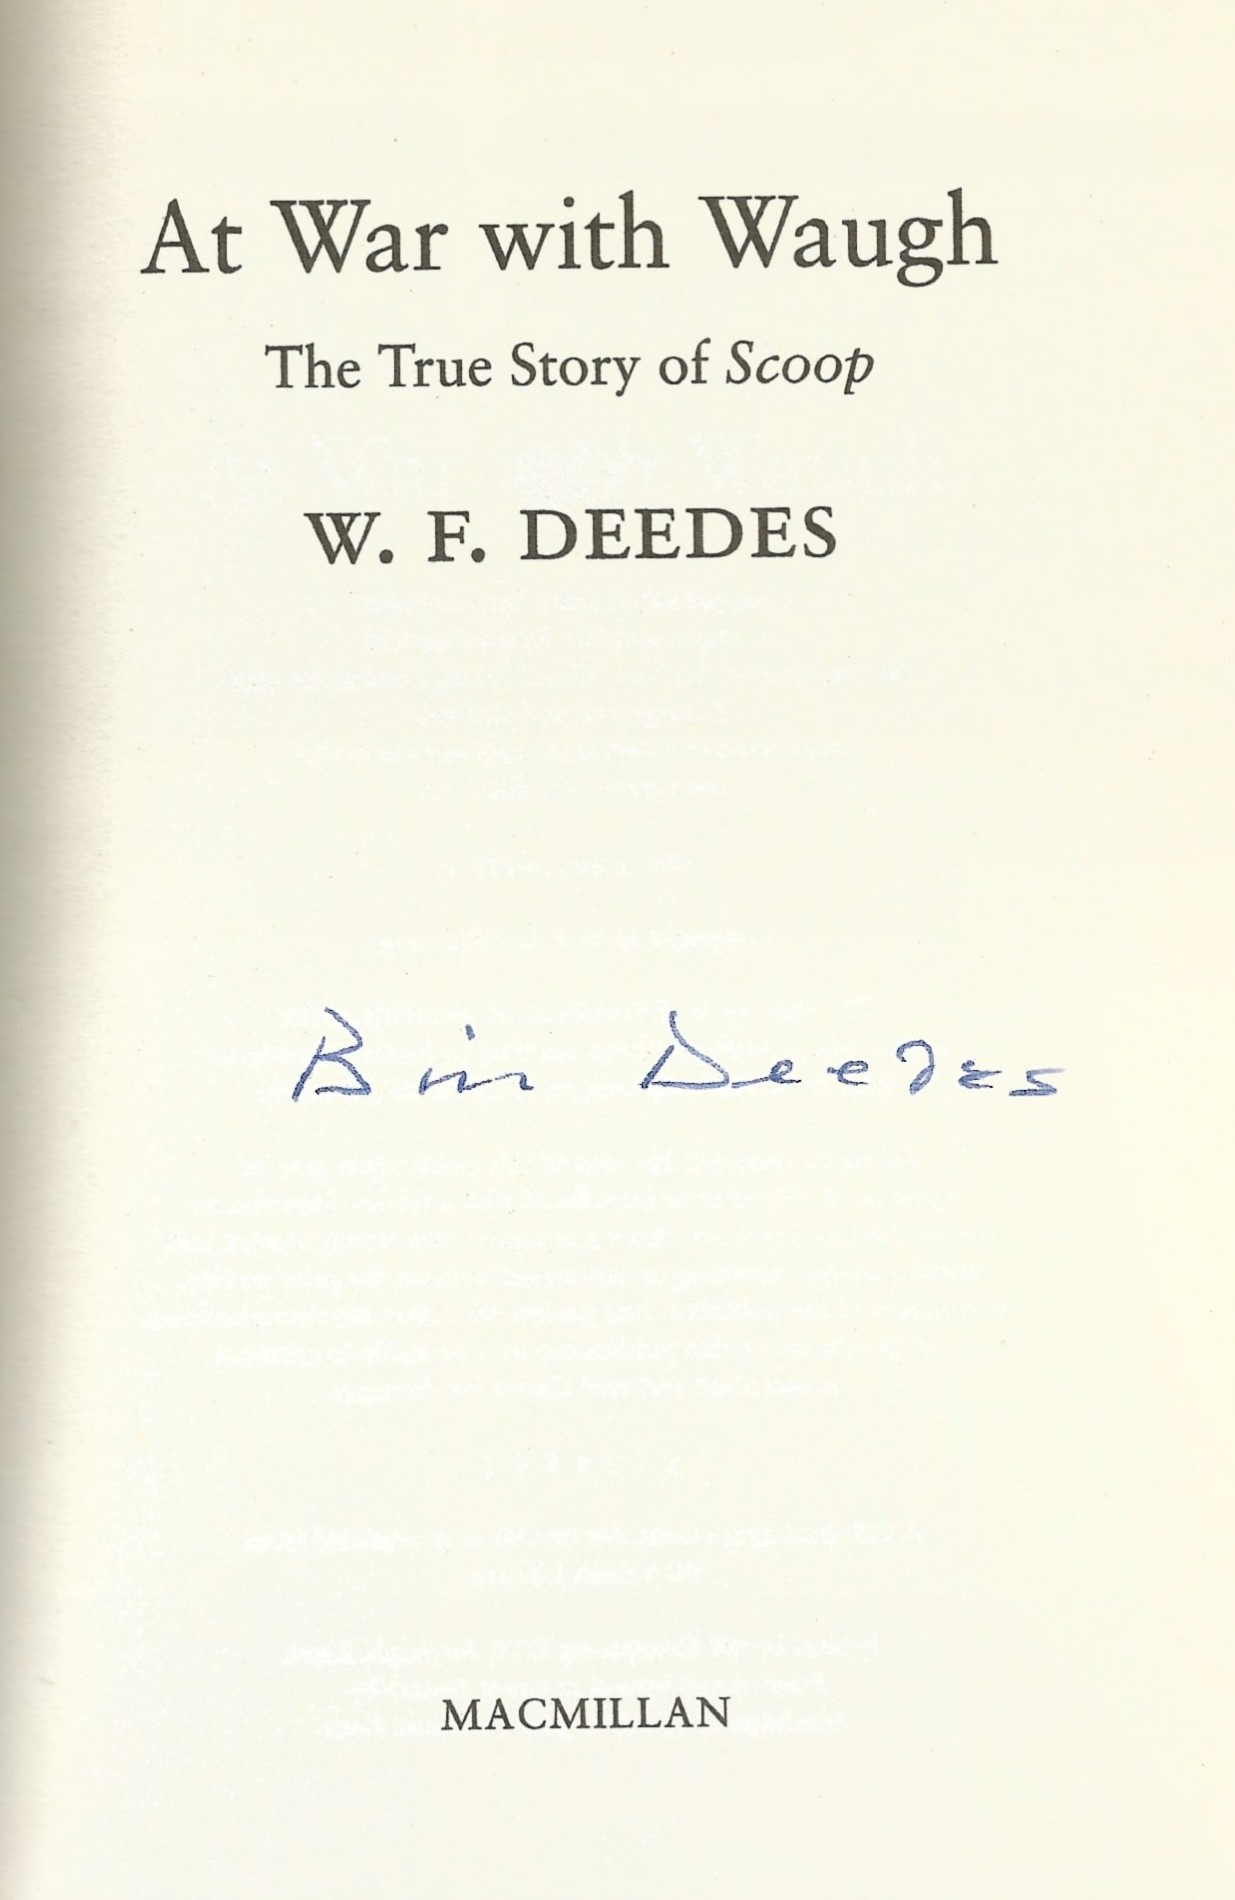 W.F. Deedes. A War With Waugh, The Real Story Of Scoop. A WW2 First Edition Hardback book in good - Image 2 of 2